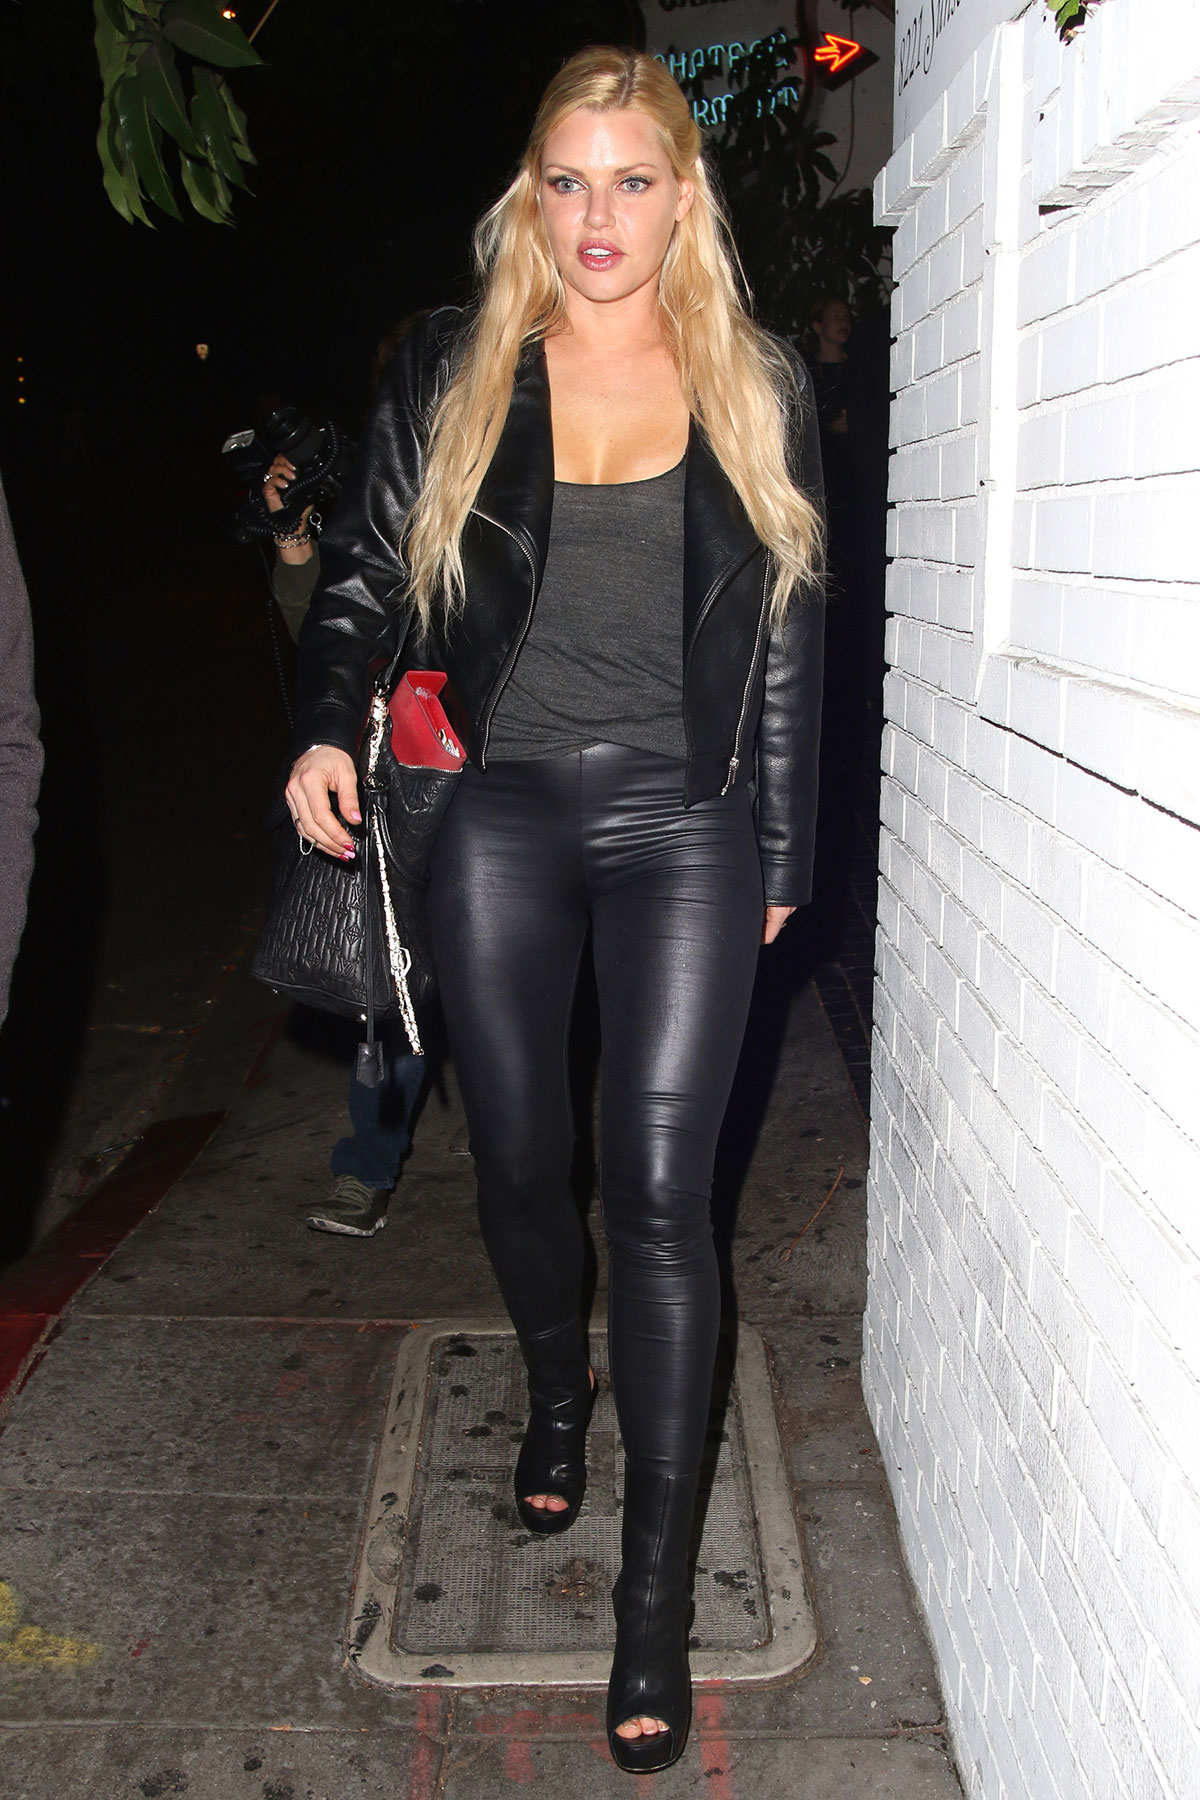 Sophie Monk leaving Chateau Marmont